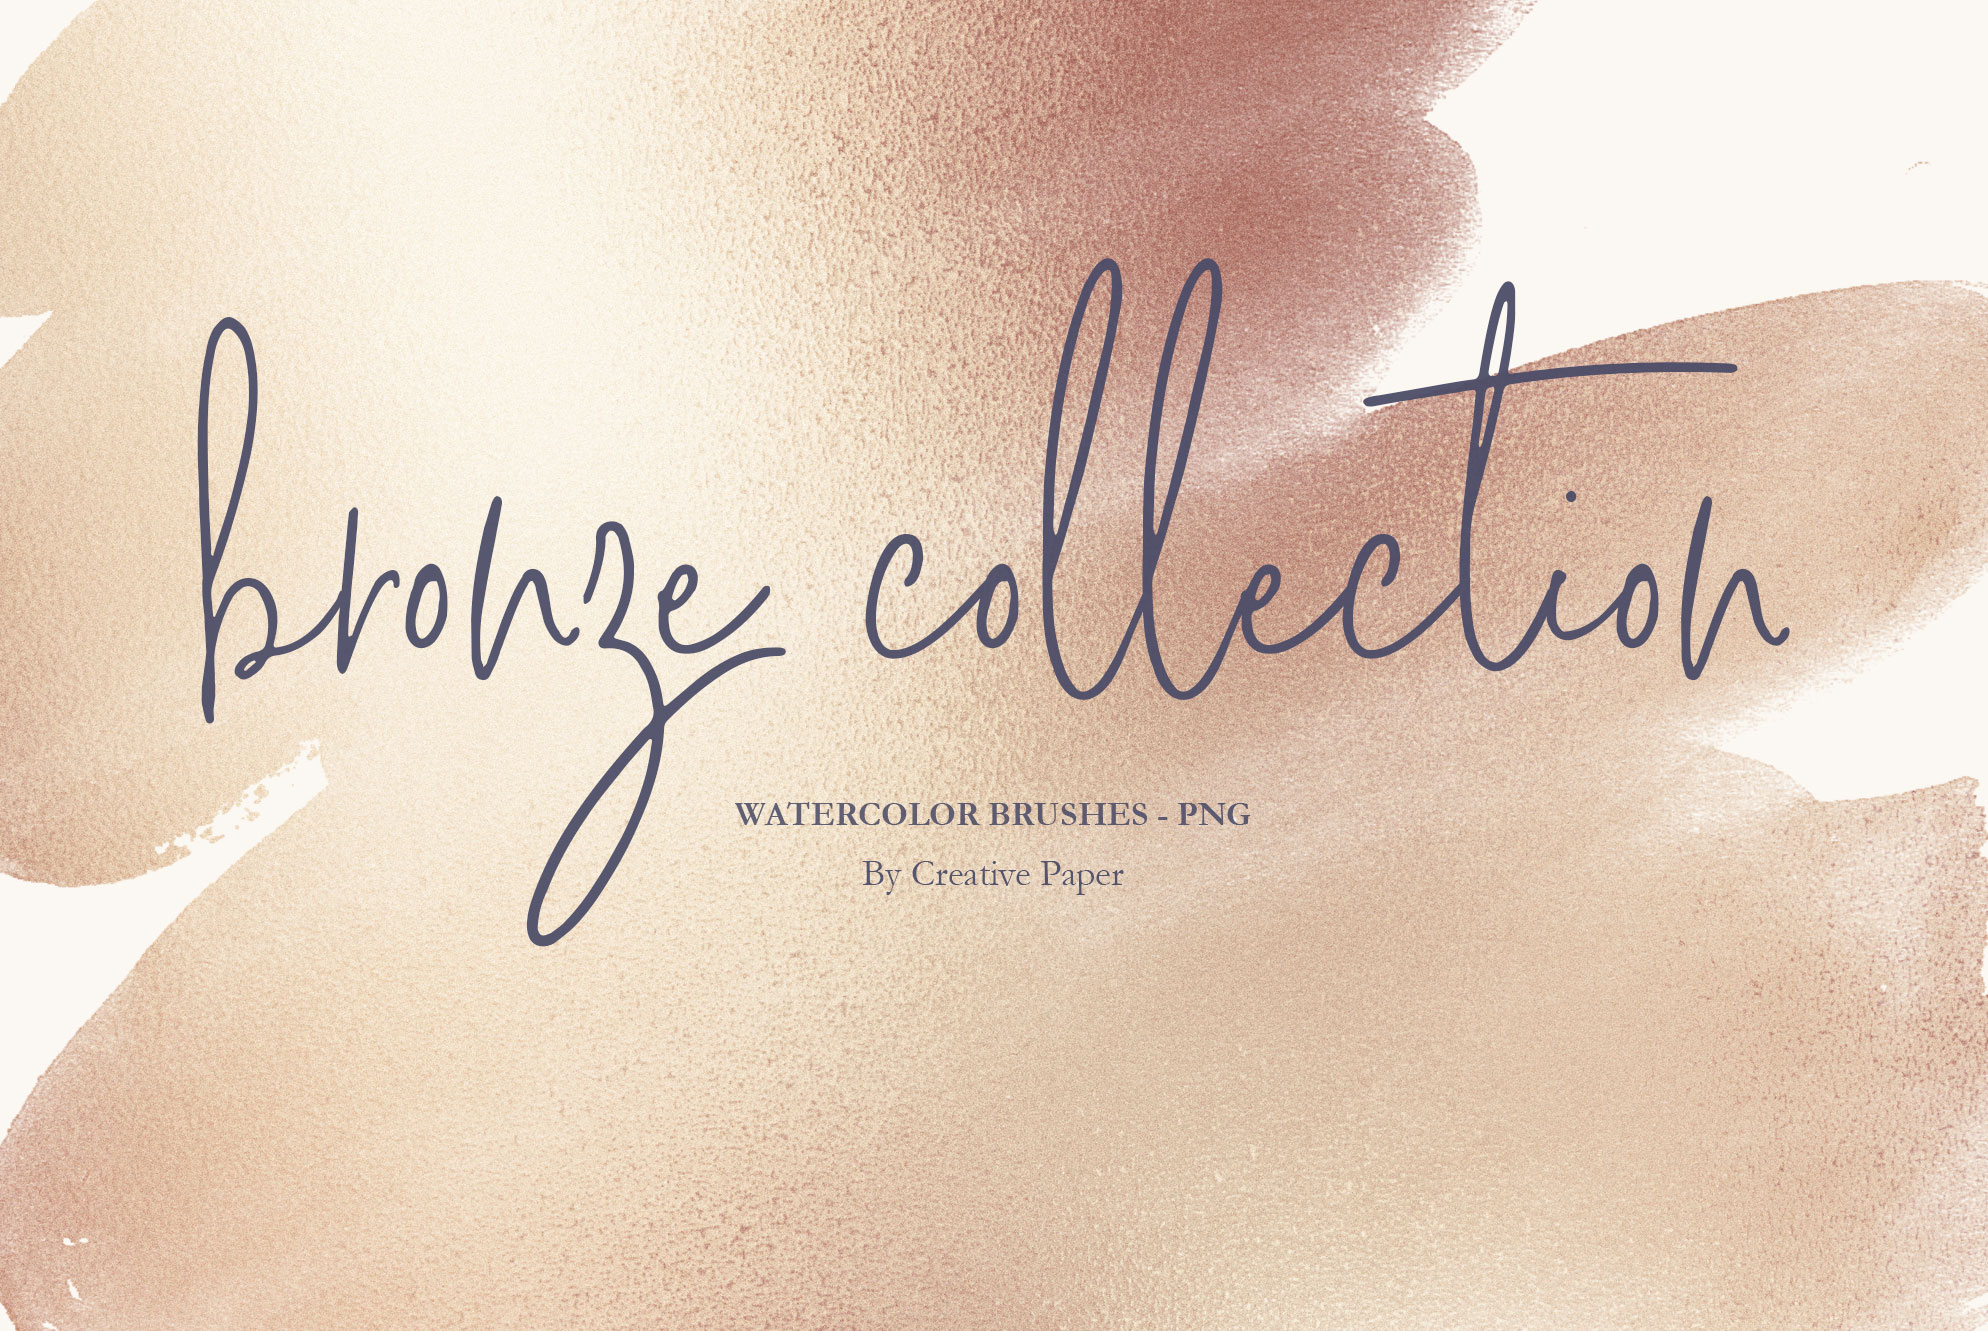 Bronze Watercolor Brushes PNG Backgrounds example image 1